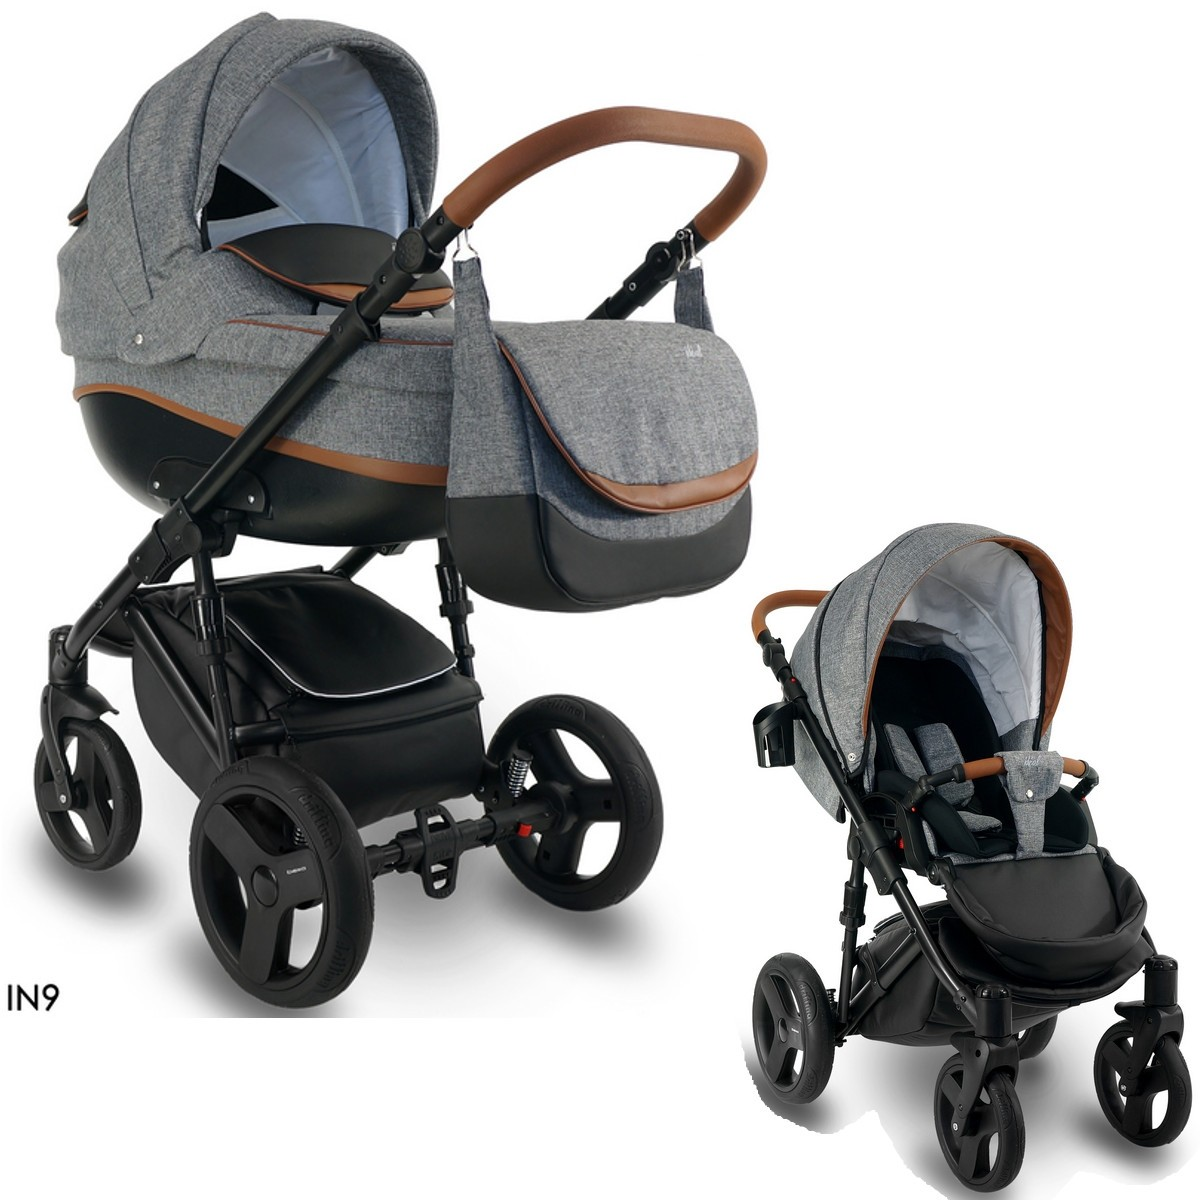 bexa ideal new kombi kinderwagen 2in1 mit babywanne sportwagenaufsatz buggy oder 3in1. Black Bedroom Furniture Sets. Home Design Ideas